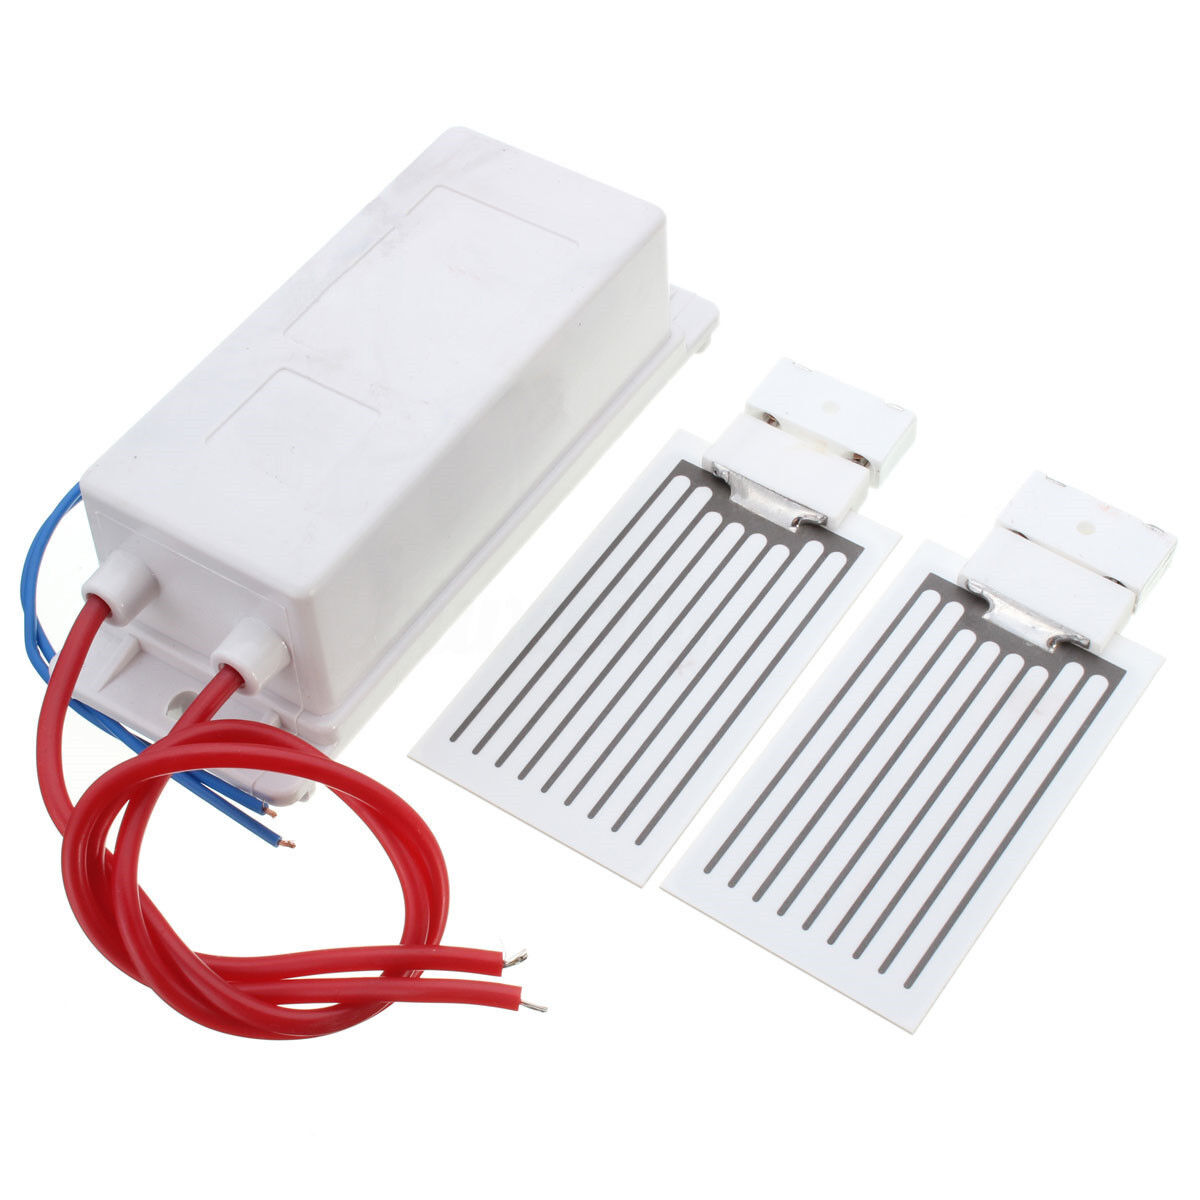 110/220V 7/10g/hr Supply Ceramic Plate Ozone Generator Air Cleaner Purifier Kit